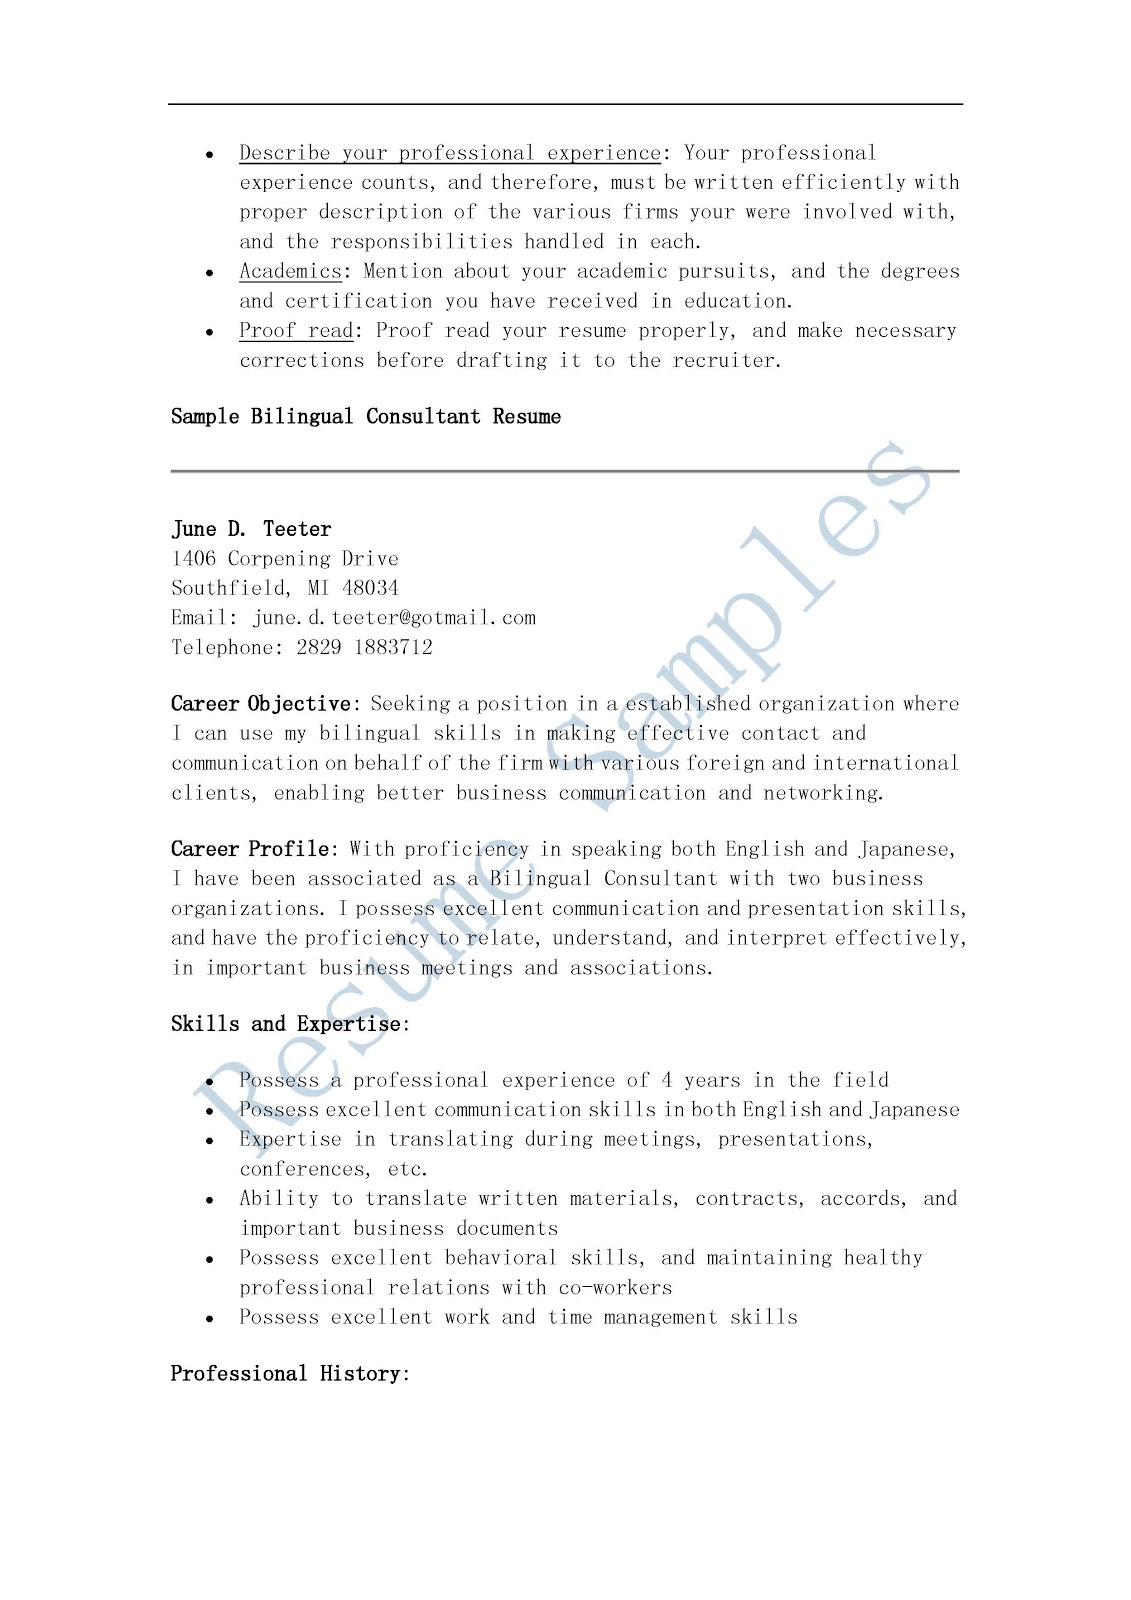 resume samples  bilingual consultant resume